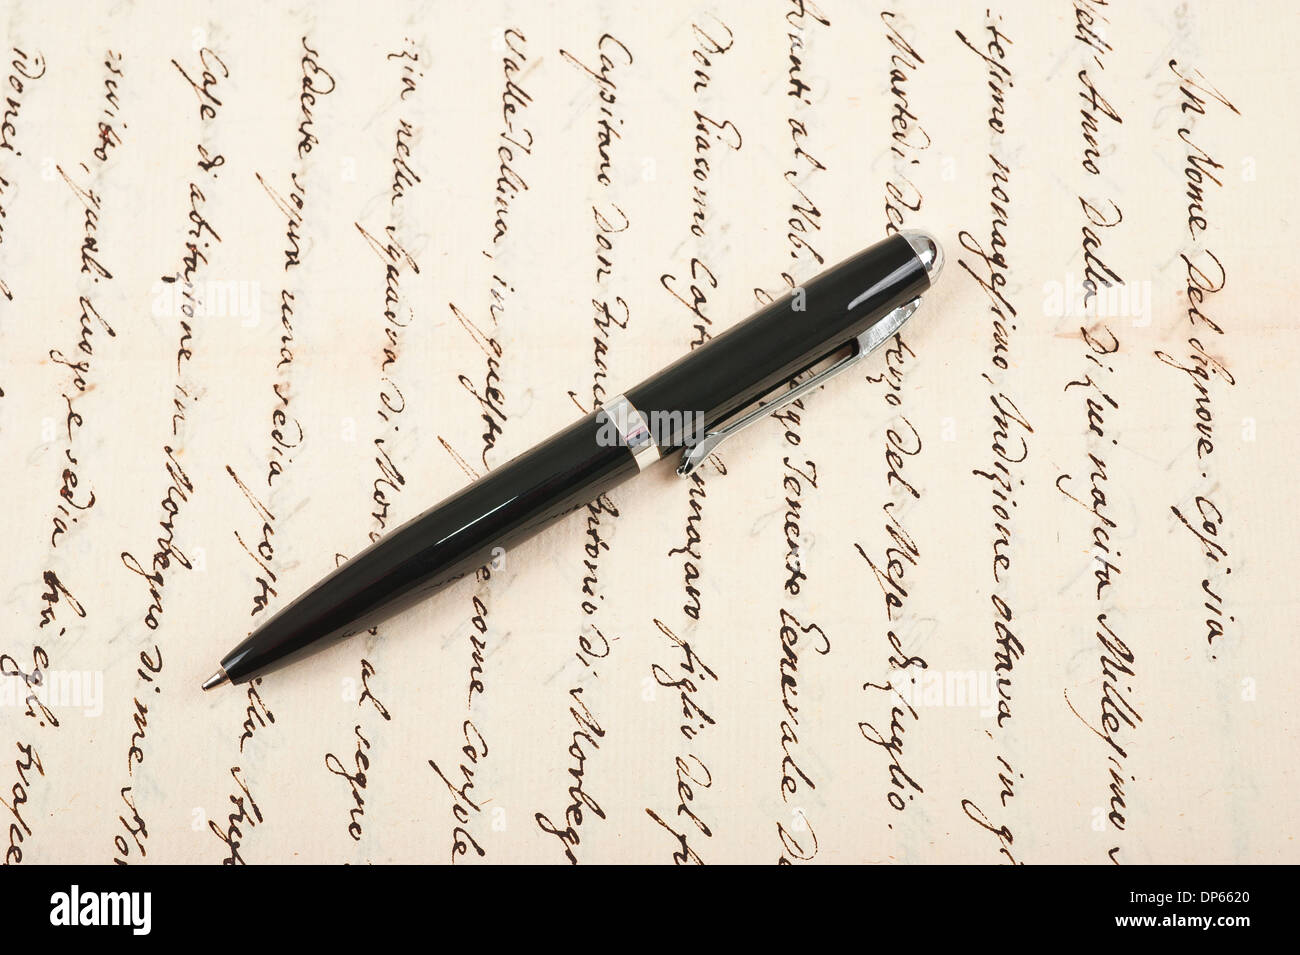 pen with vintage hand written letter - Stock Image